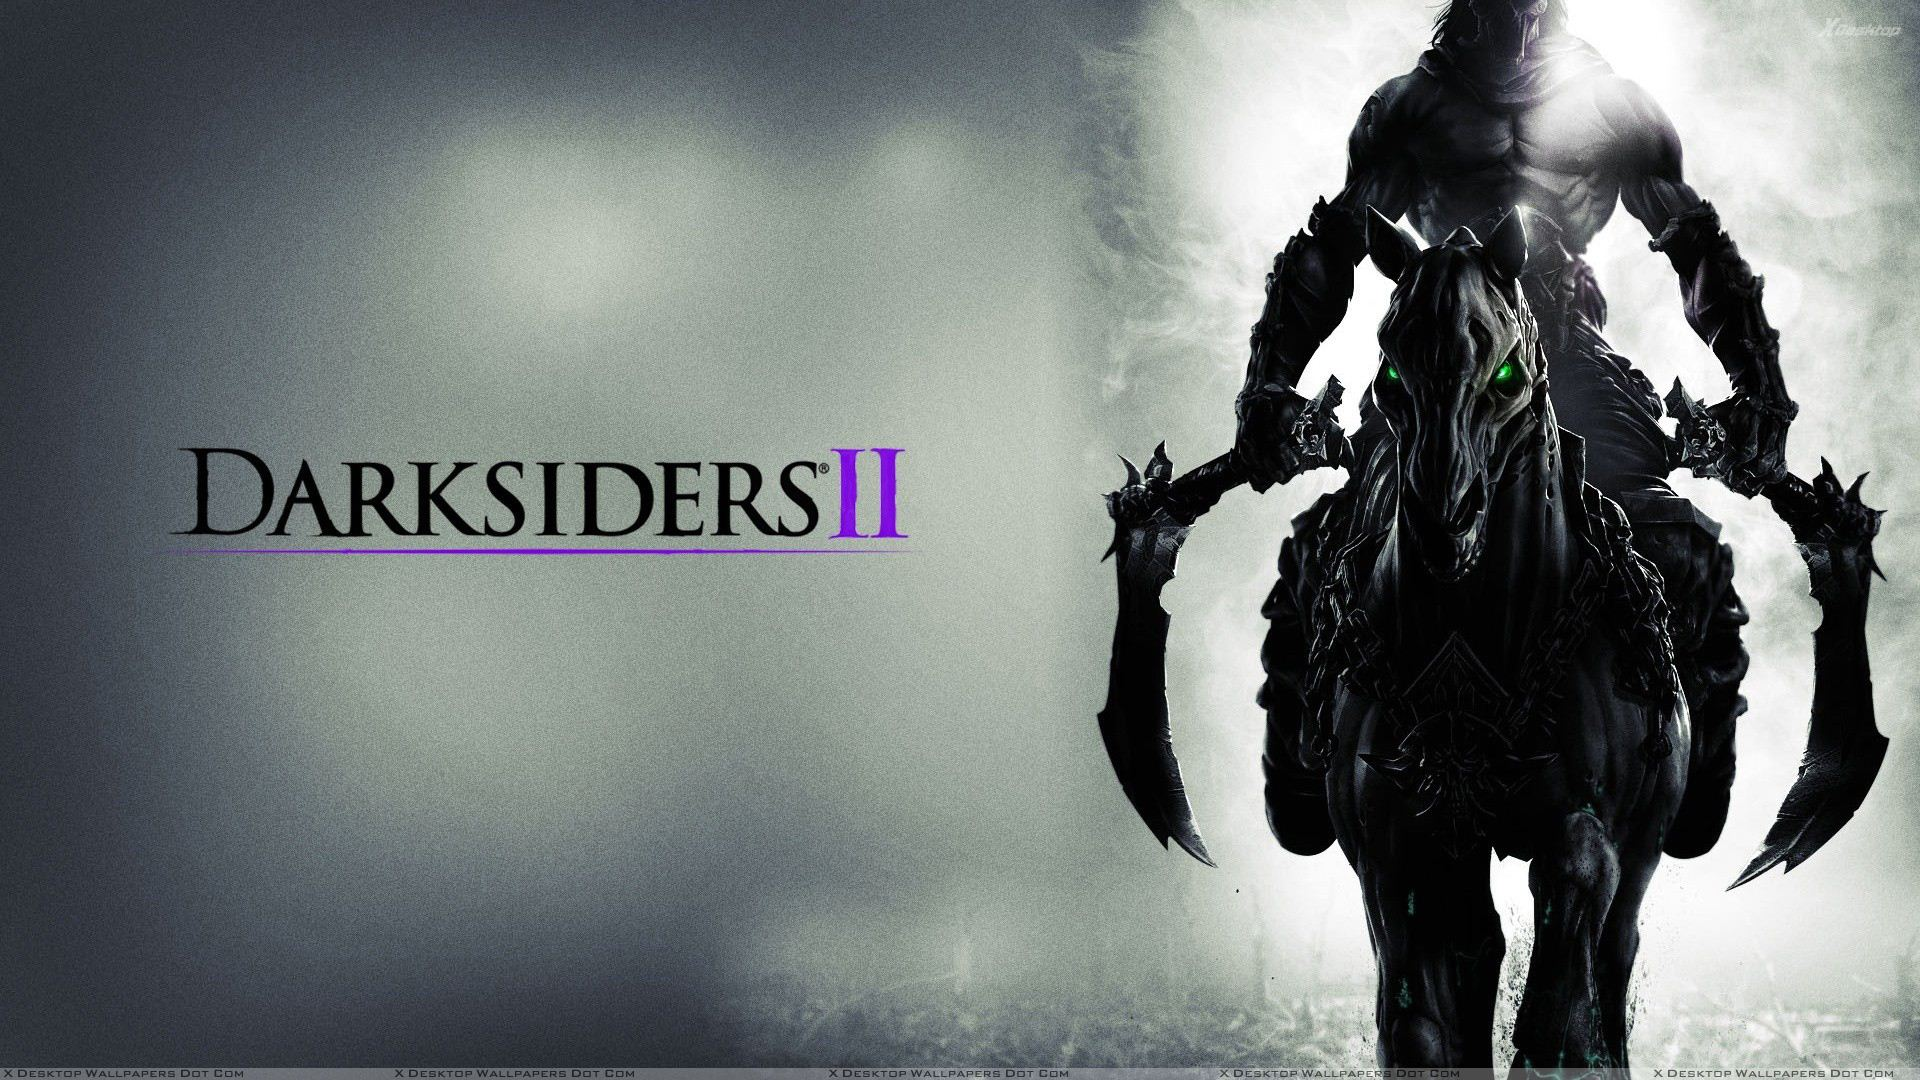 darksiders 2 wallpapers, photos & images in hd